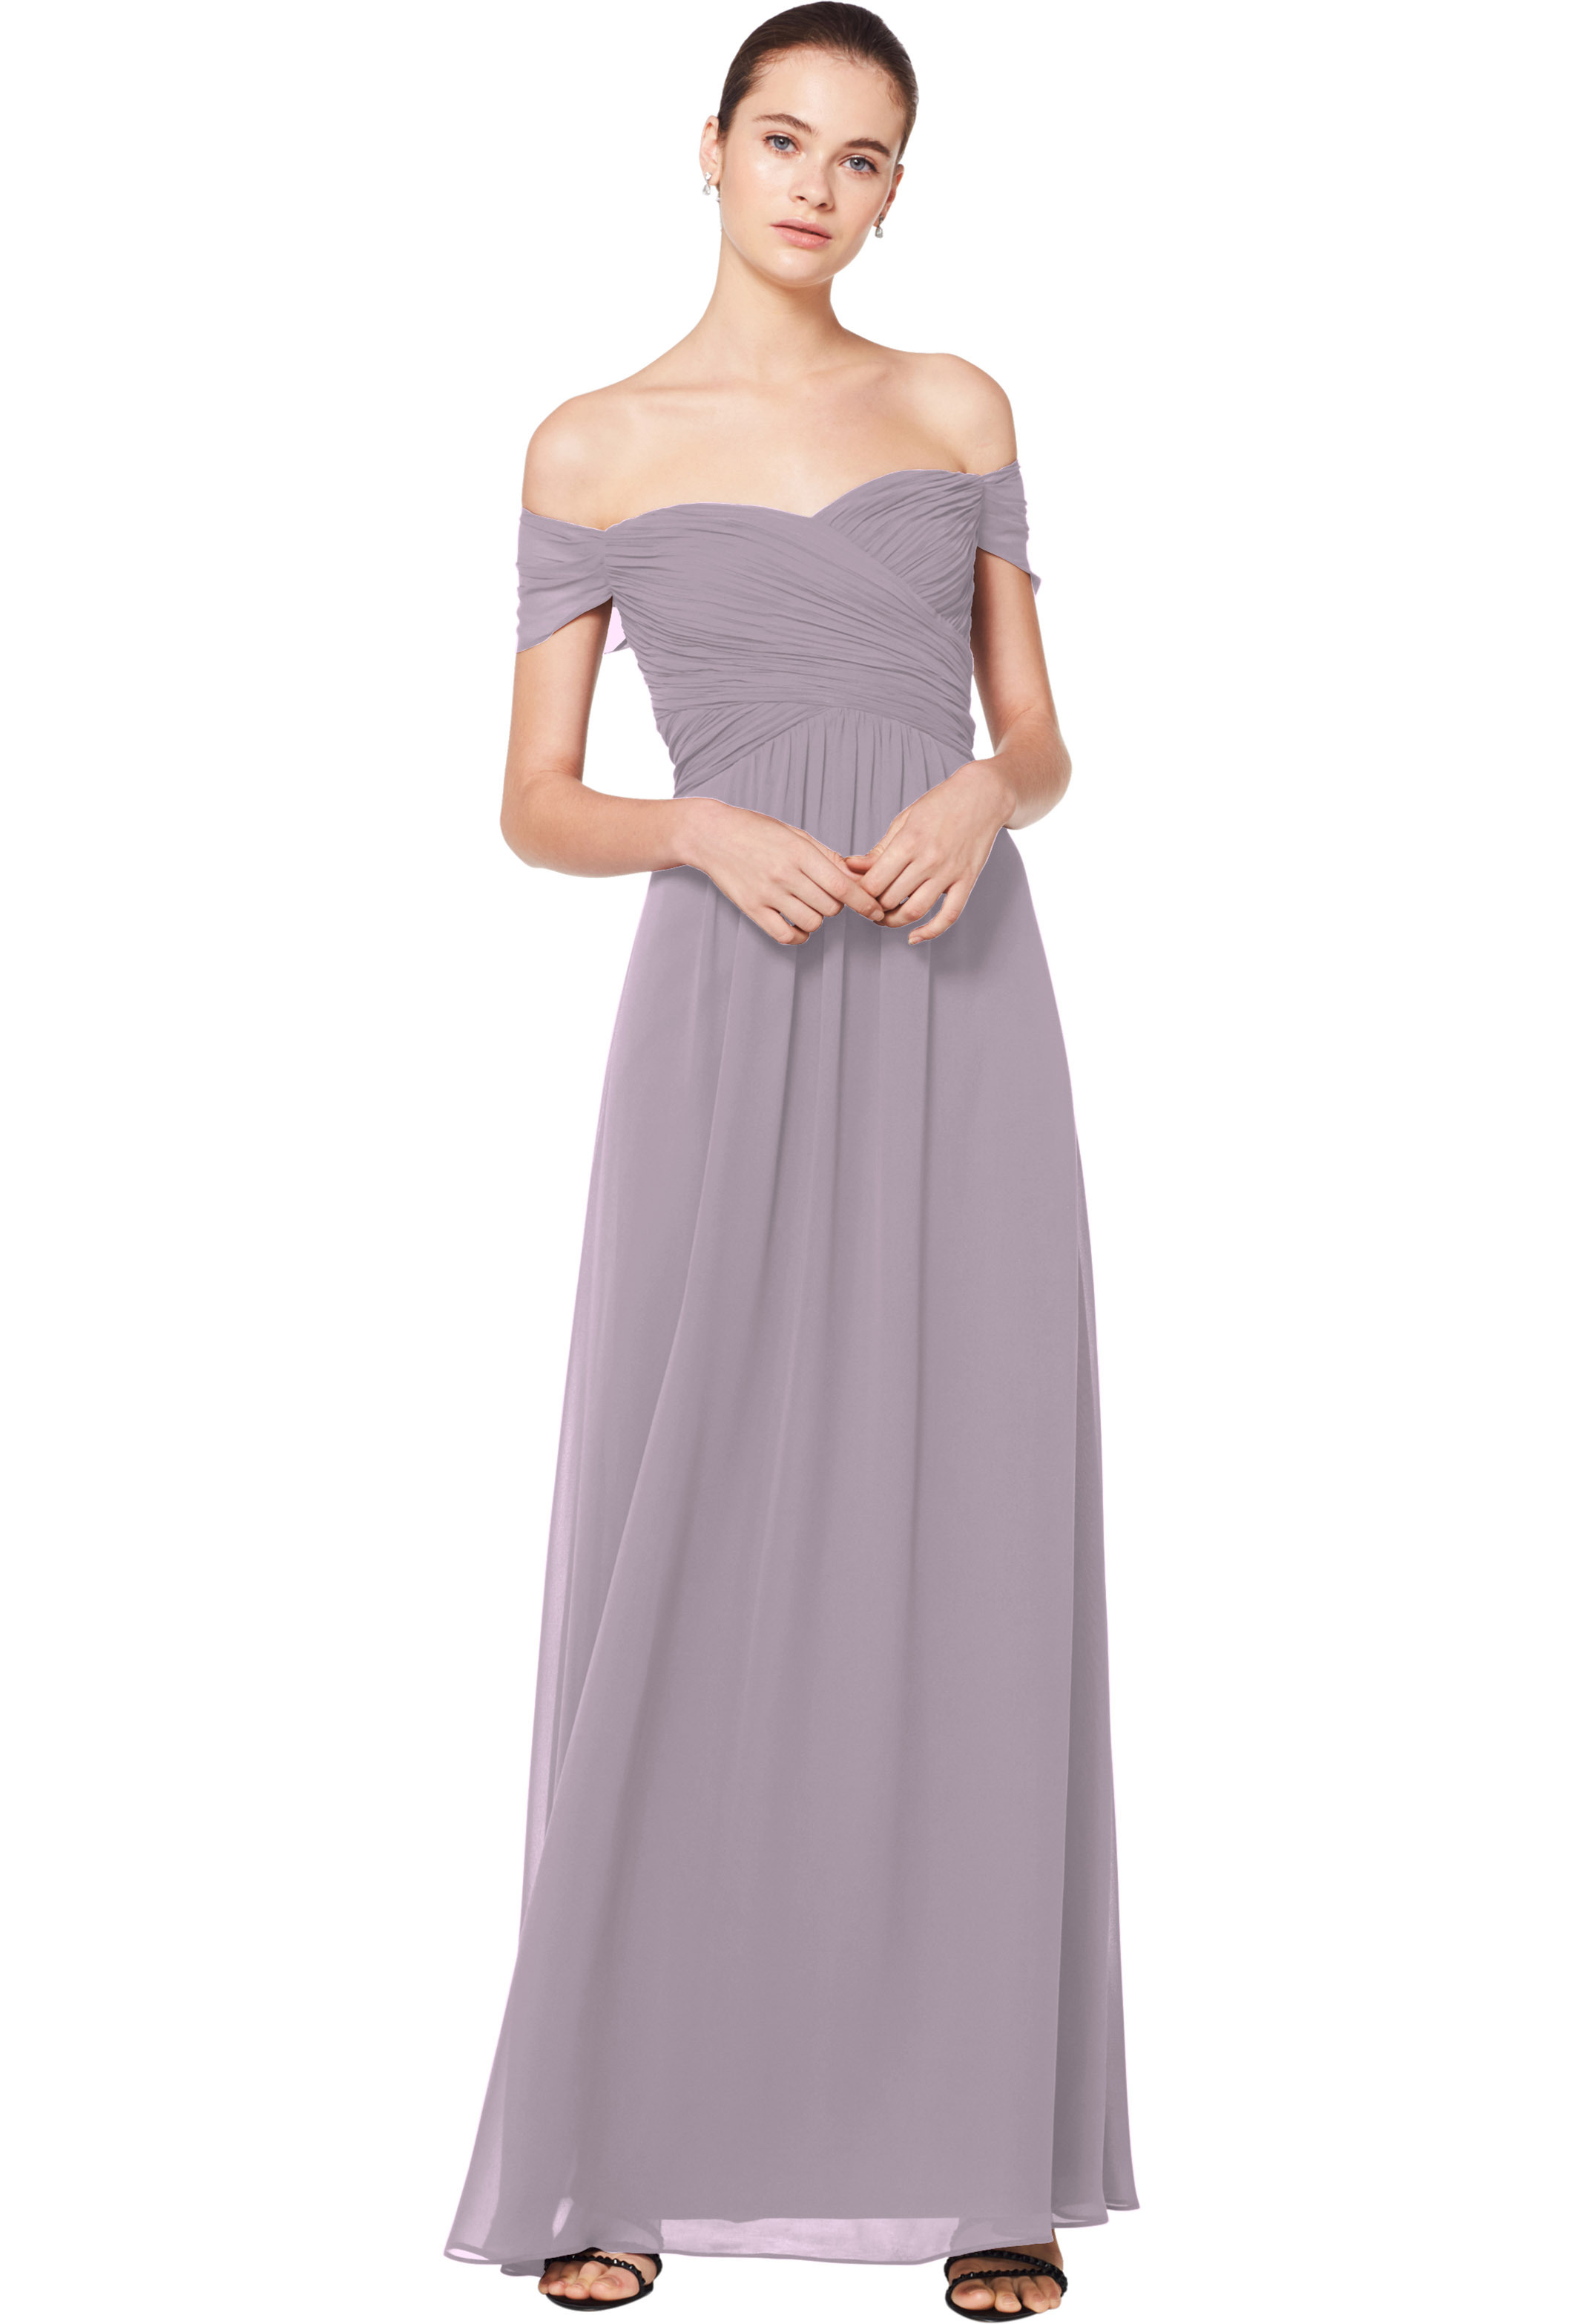 Bill Levkoff HEATHER Chiffon Sweetheart A-line gown, $180.00 Front